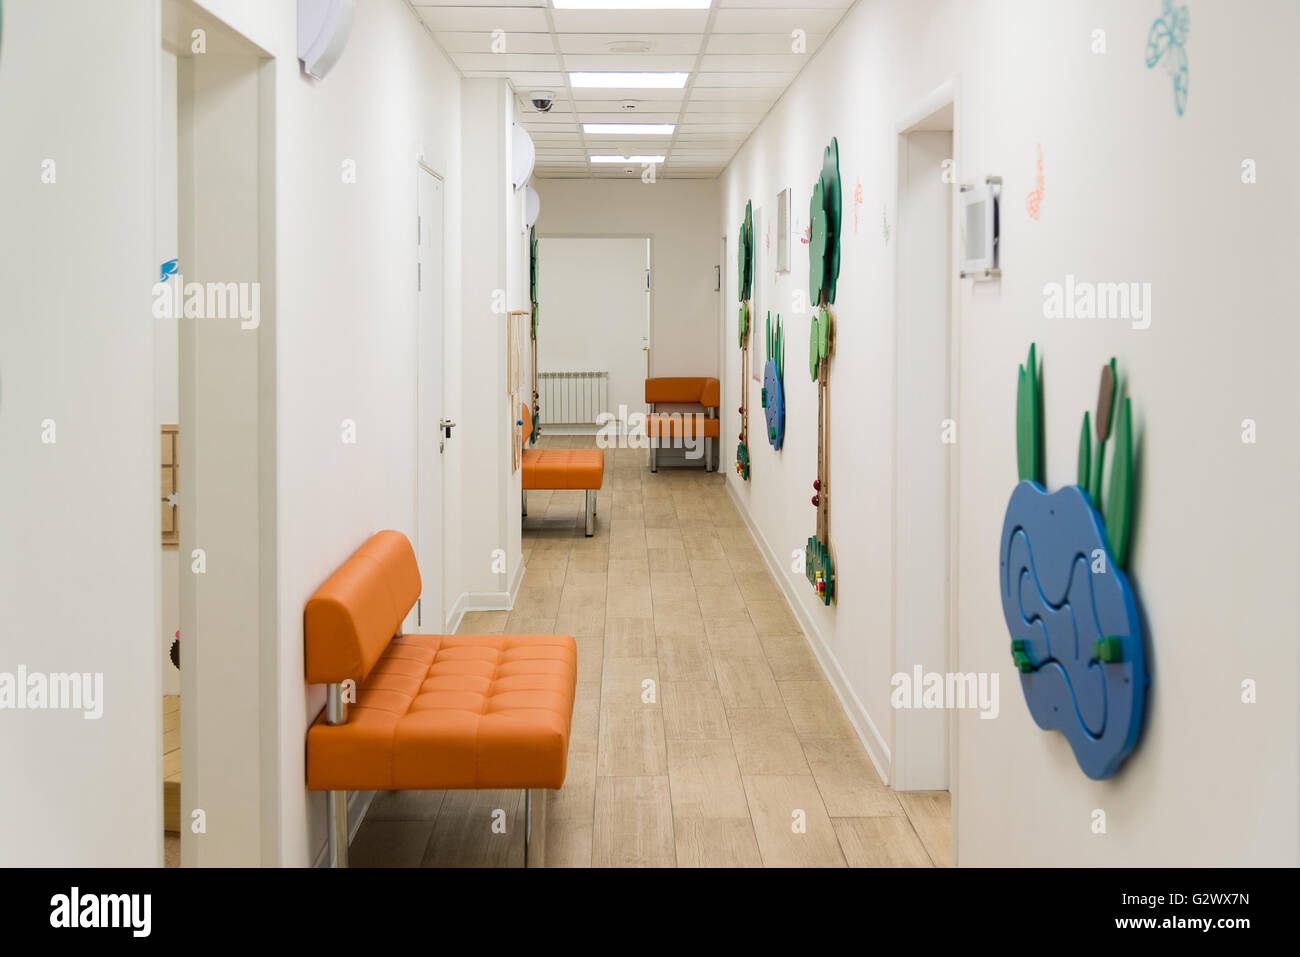 Children's Medical Center with educational games on walls - Stock Image